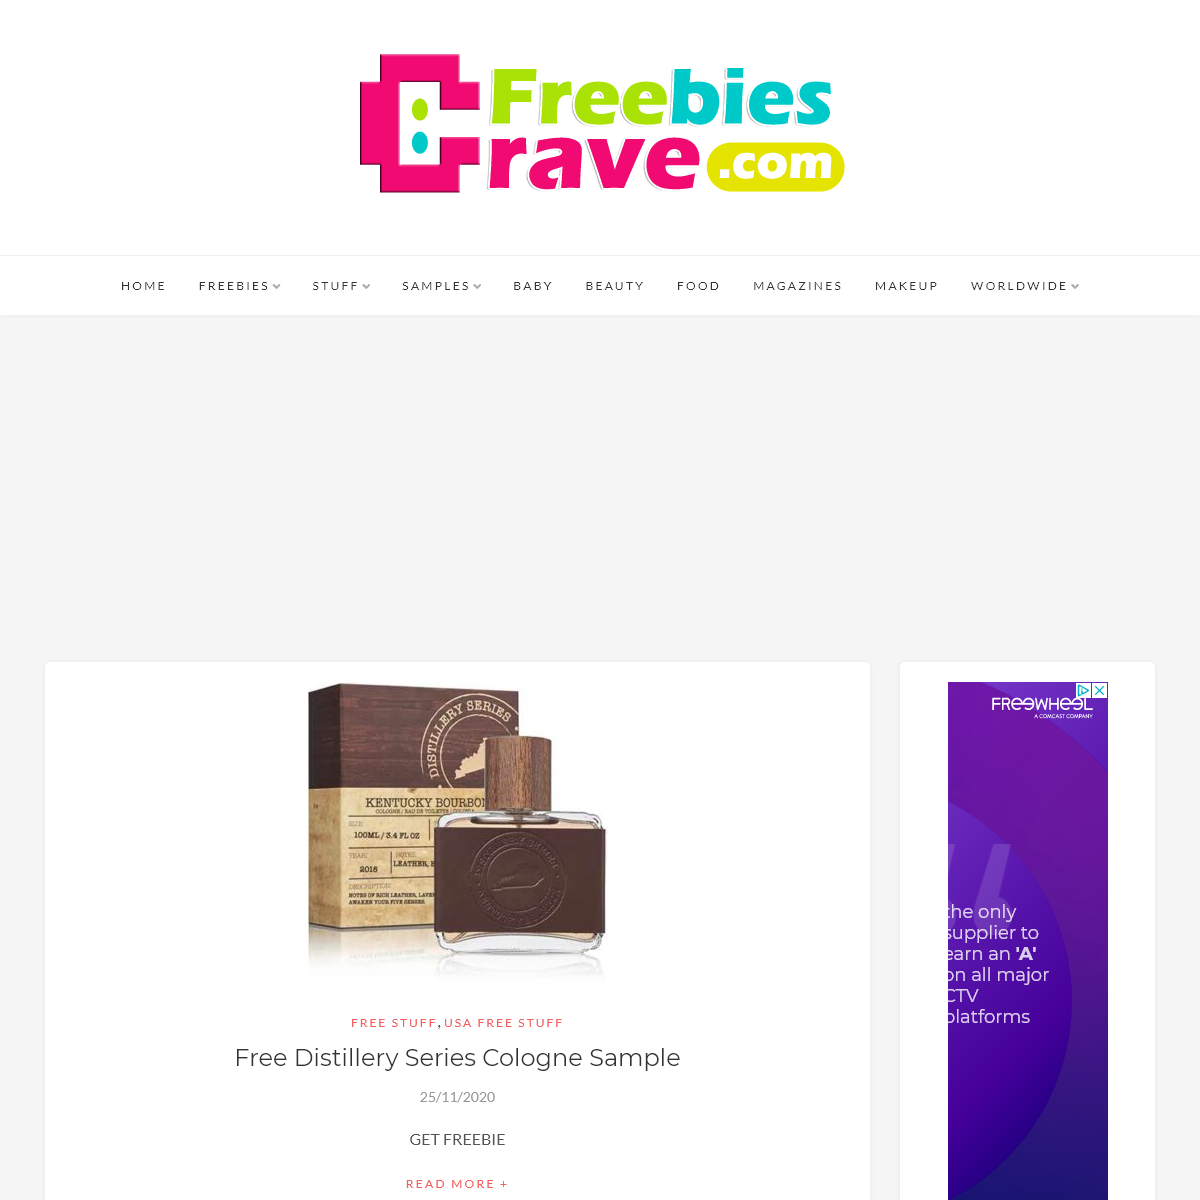 Crave Freebies - Free Stuff, Free Samples, Freebies